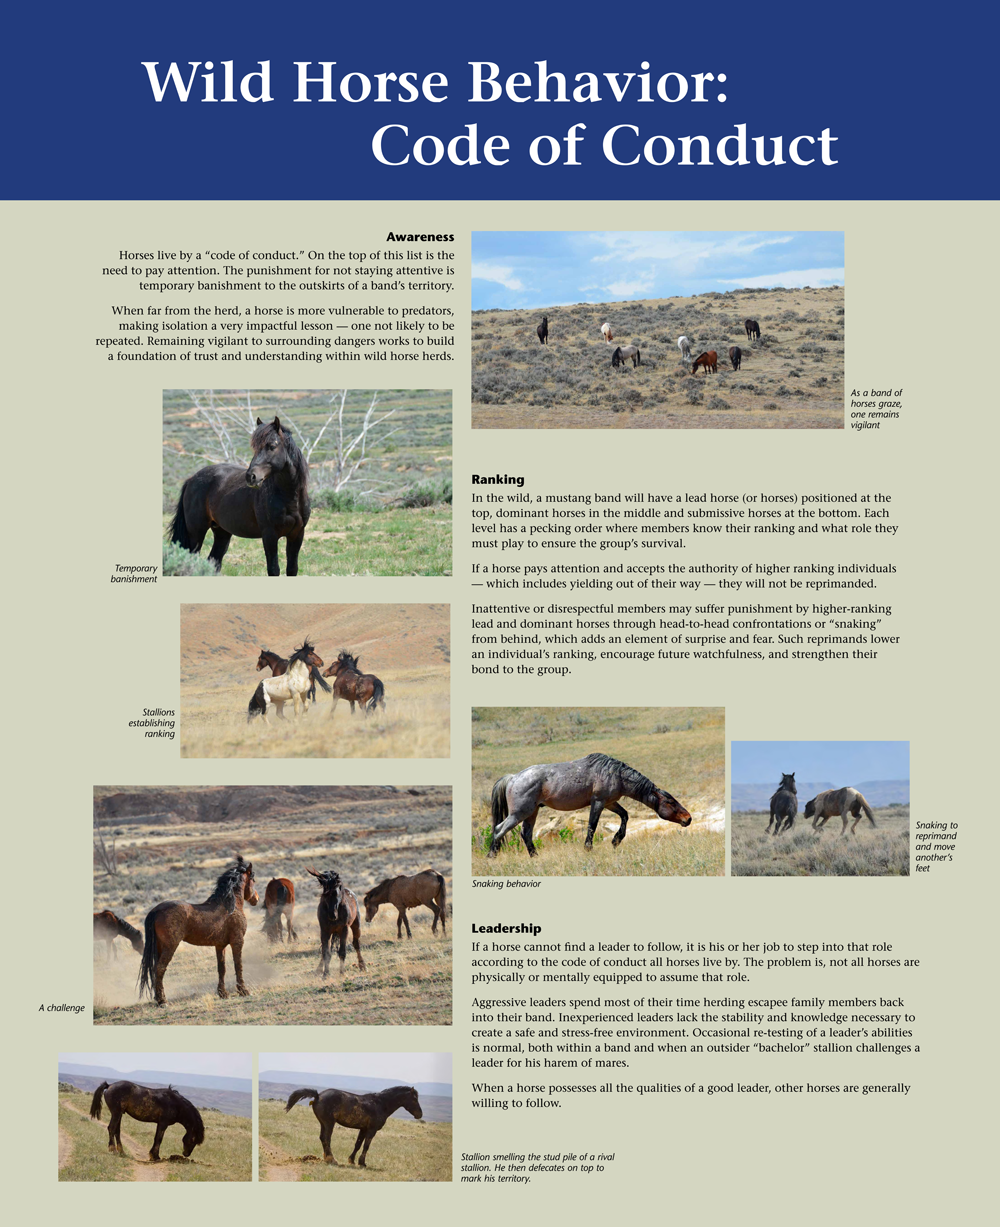 Code-of-Conduct-1000x1227